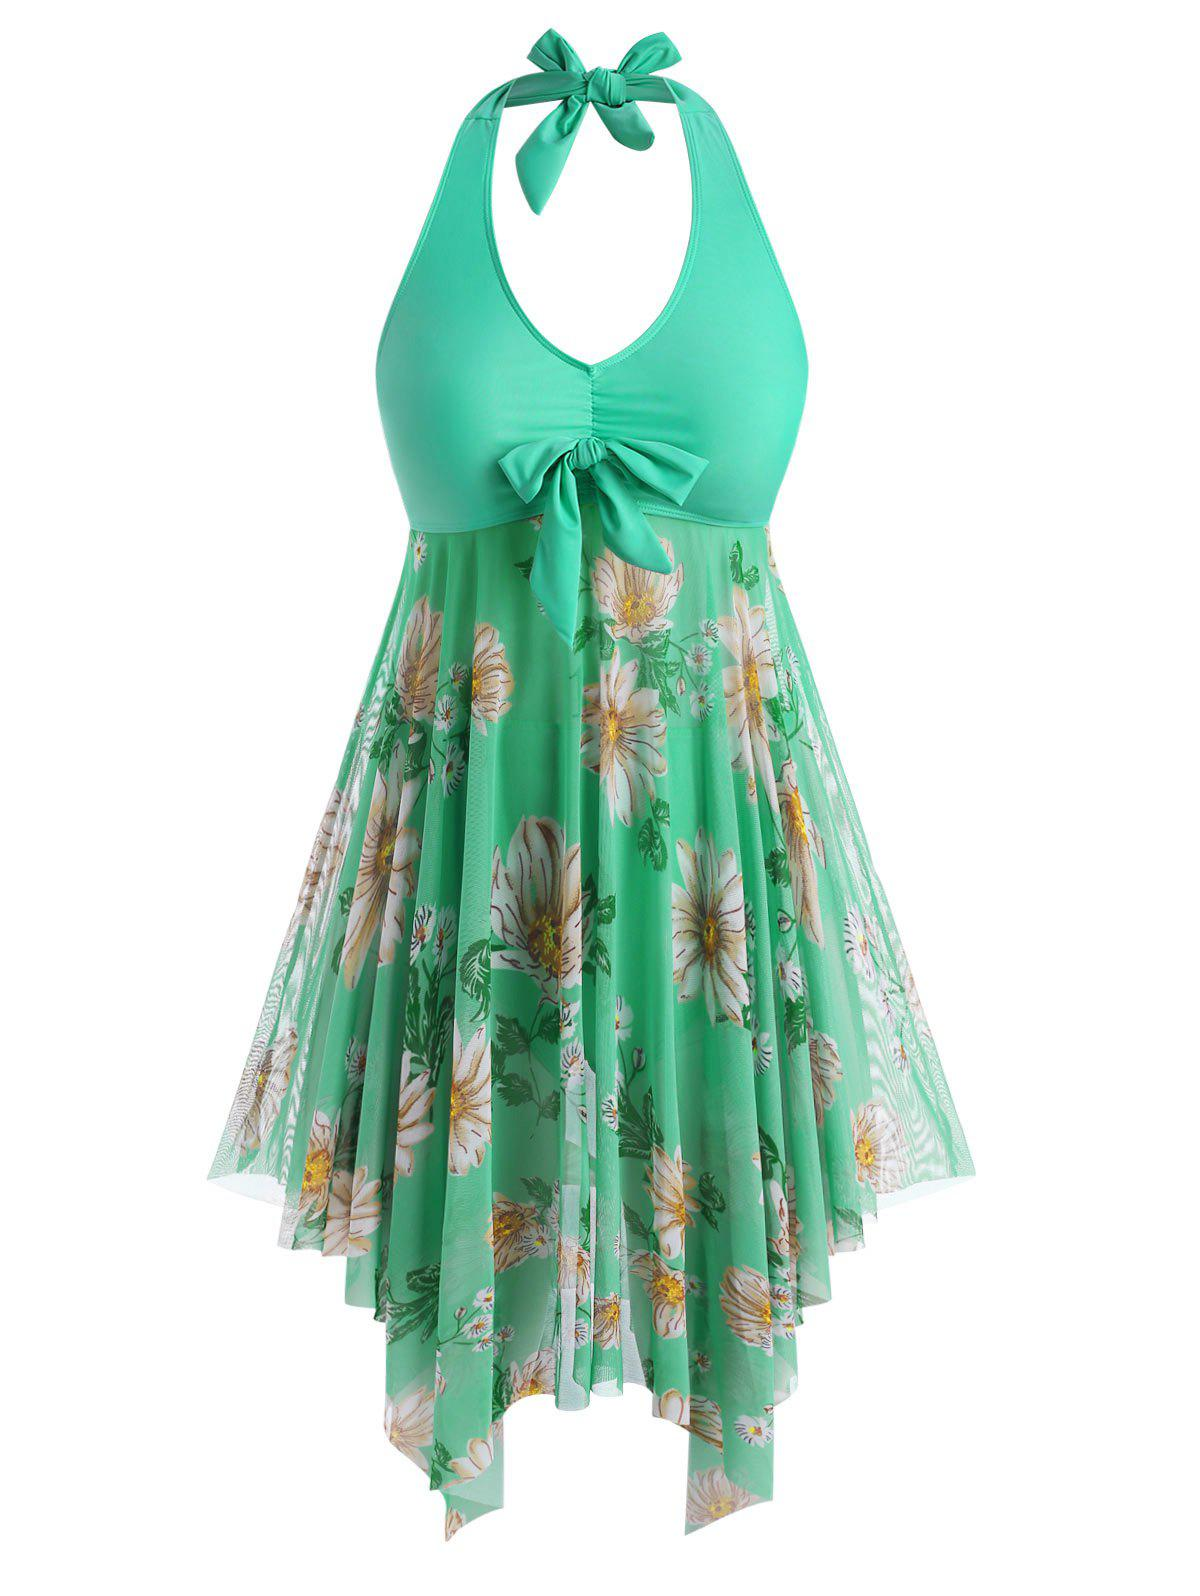 Affordable Plus Size Sunflower Print Backless Handkerchief Tankini Swimsuit